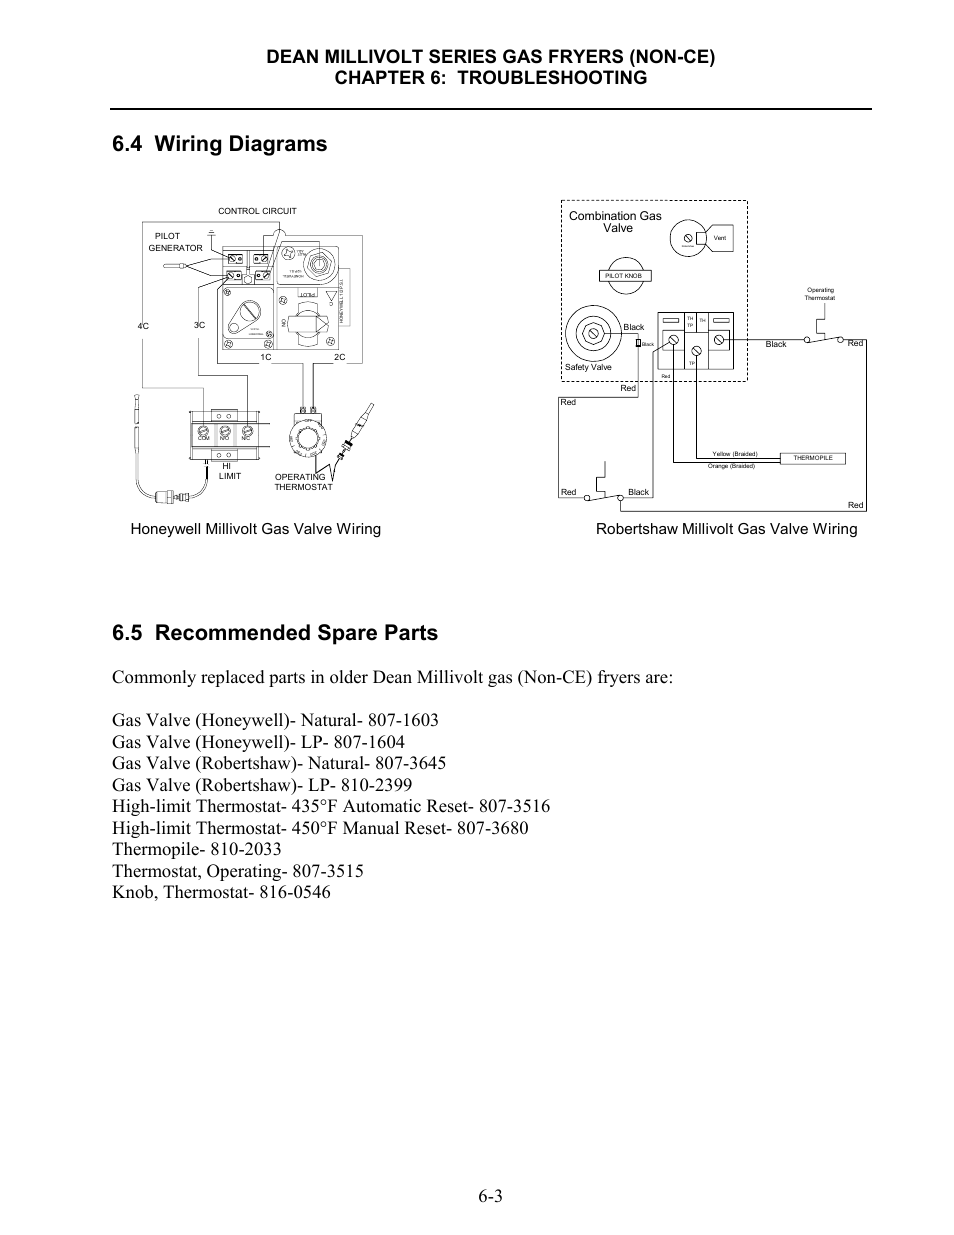 hight resolution of 4 wiring diagrams 5 recommended spare parts honeywell millivolt millivolt gas valve wiring diagram